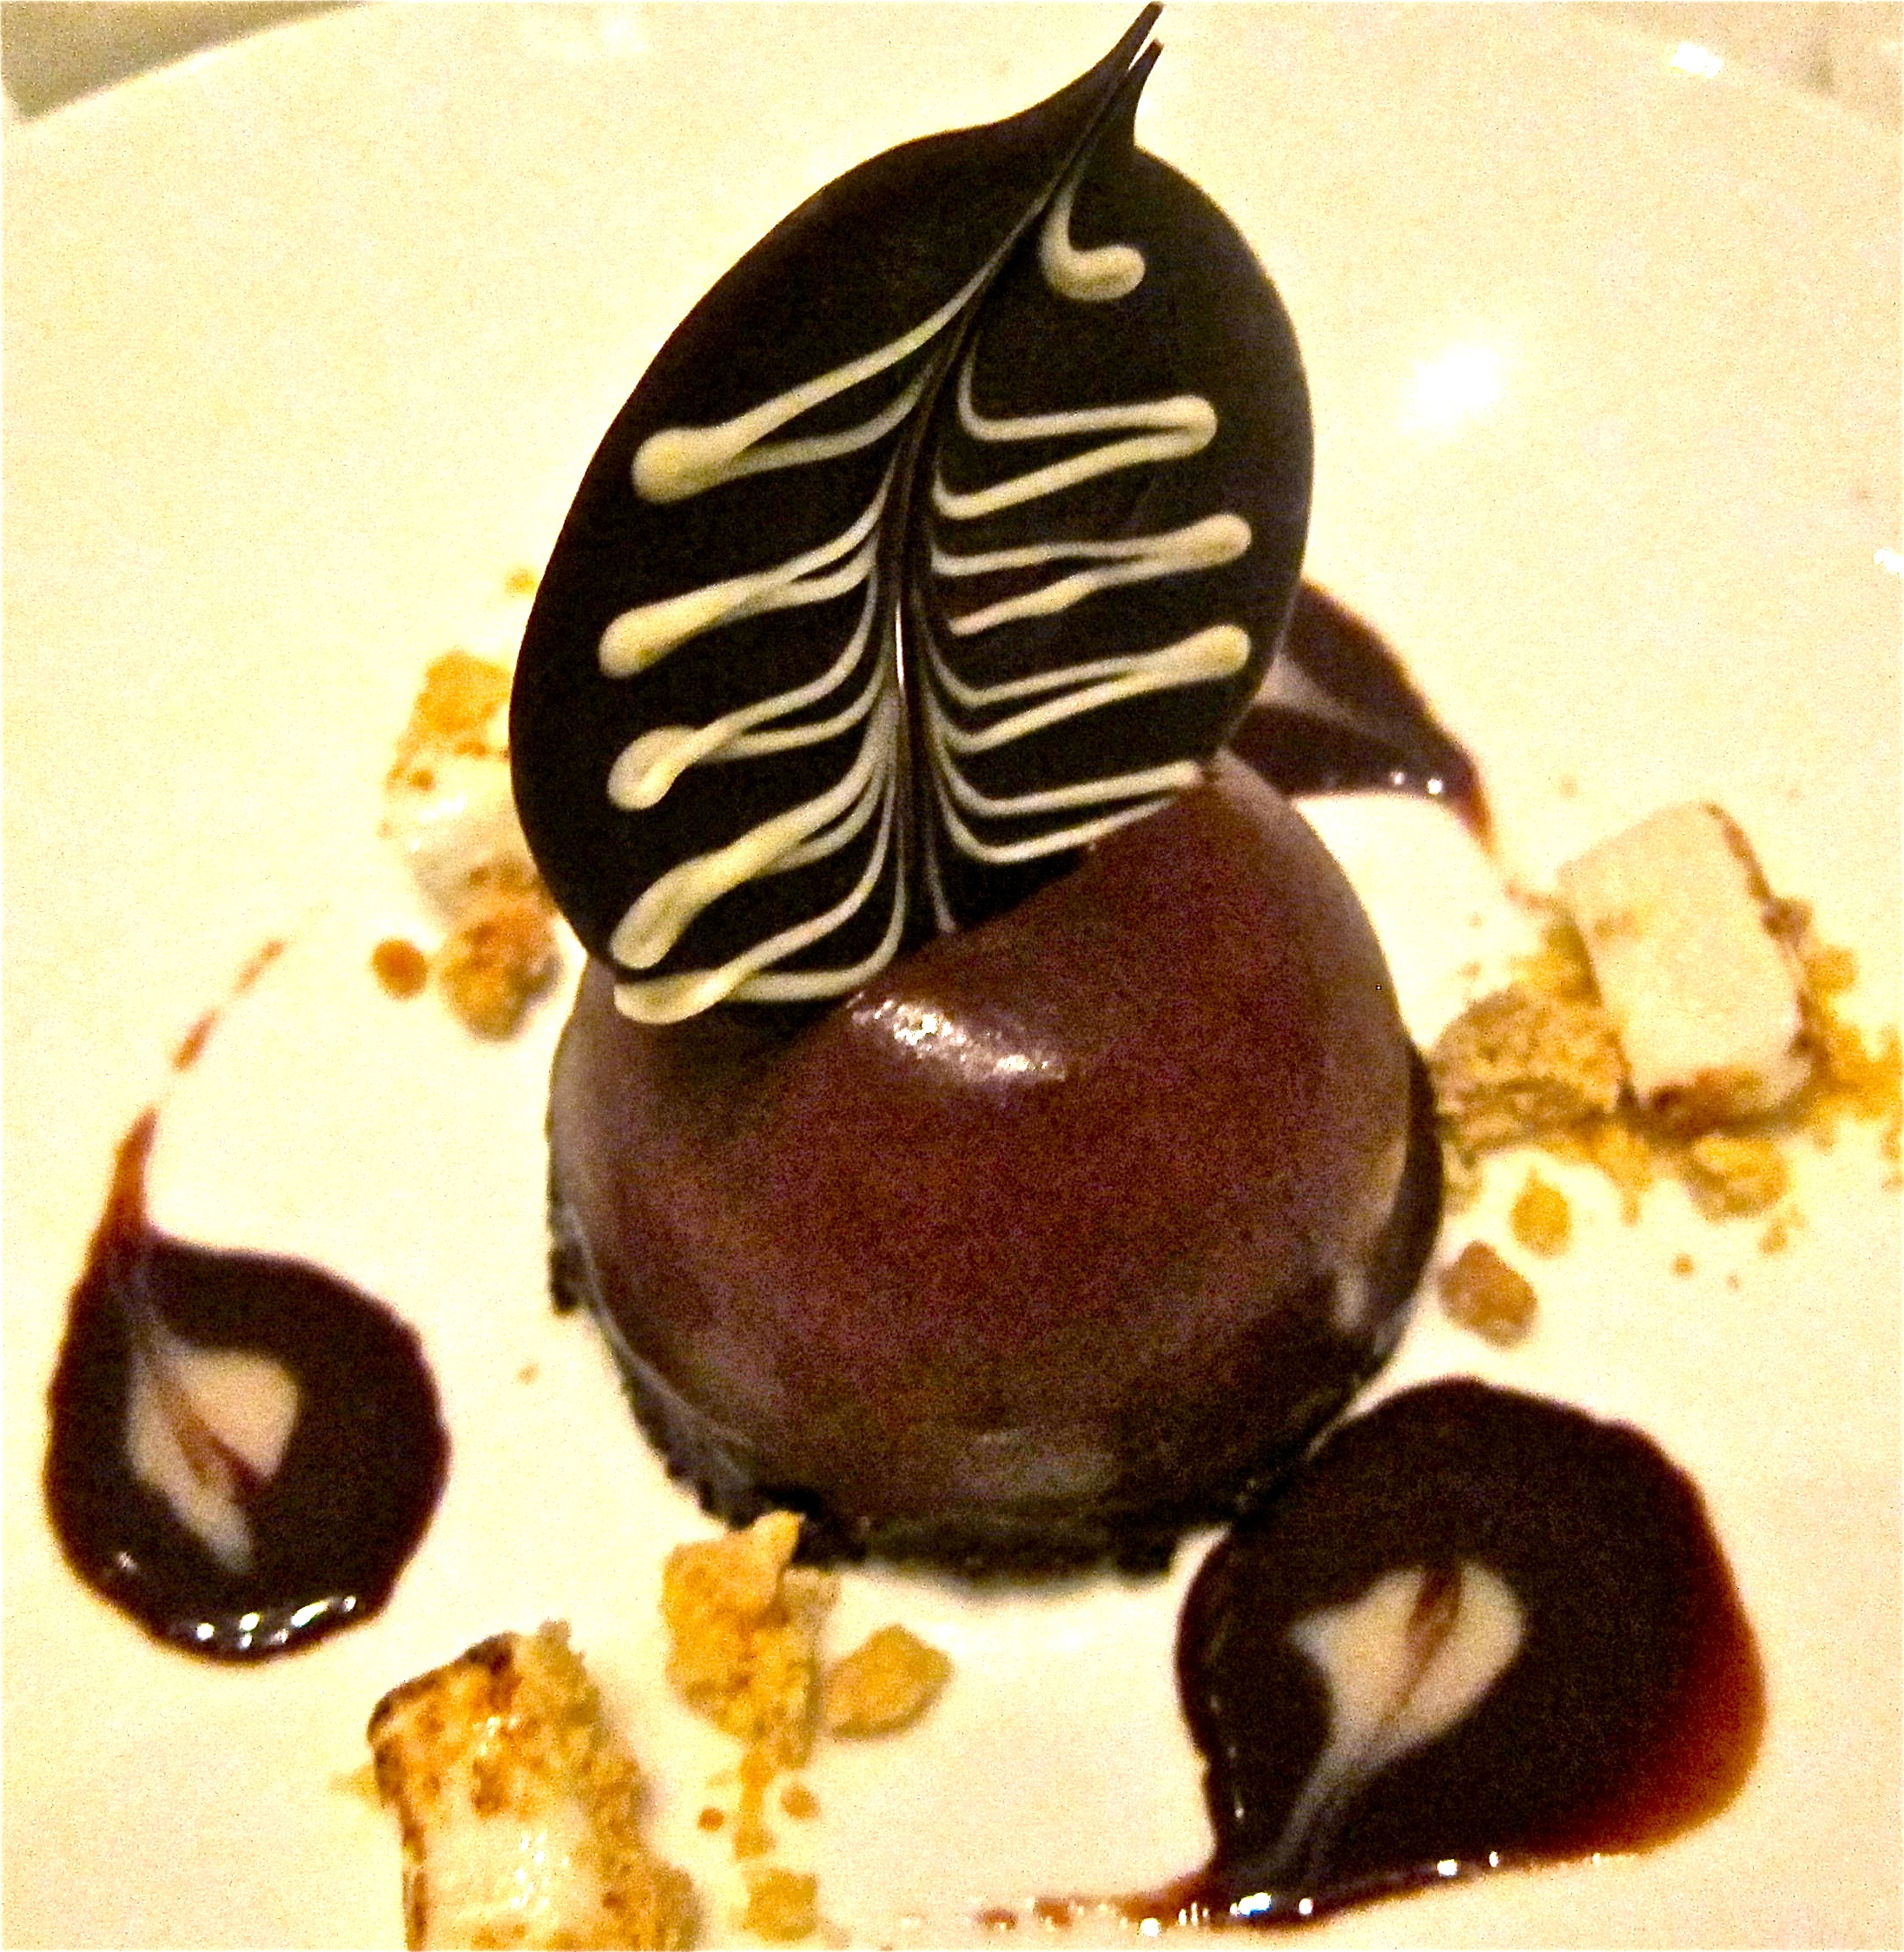 dark chocolate bombe